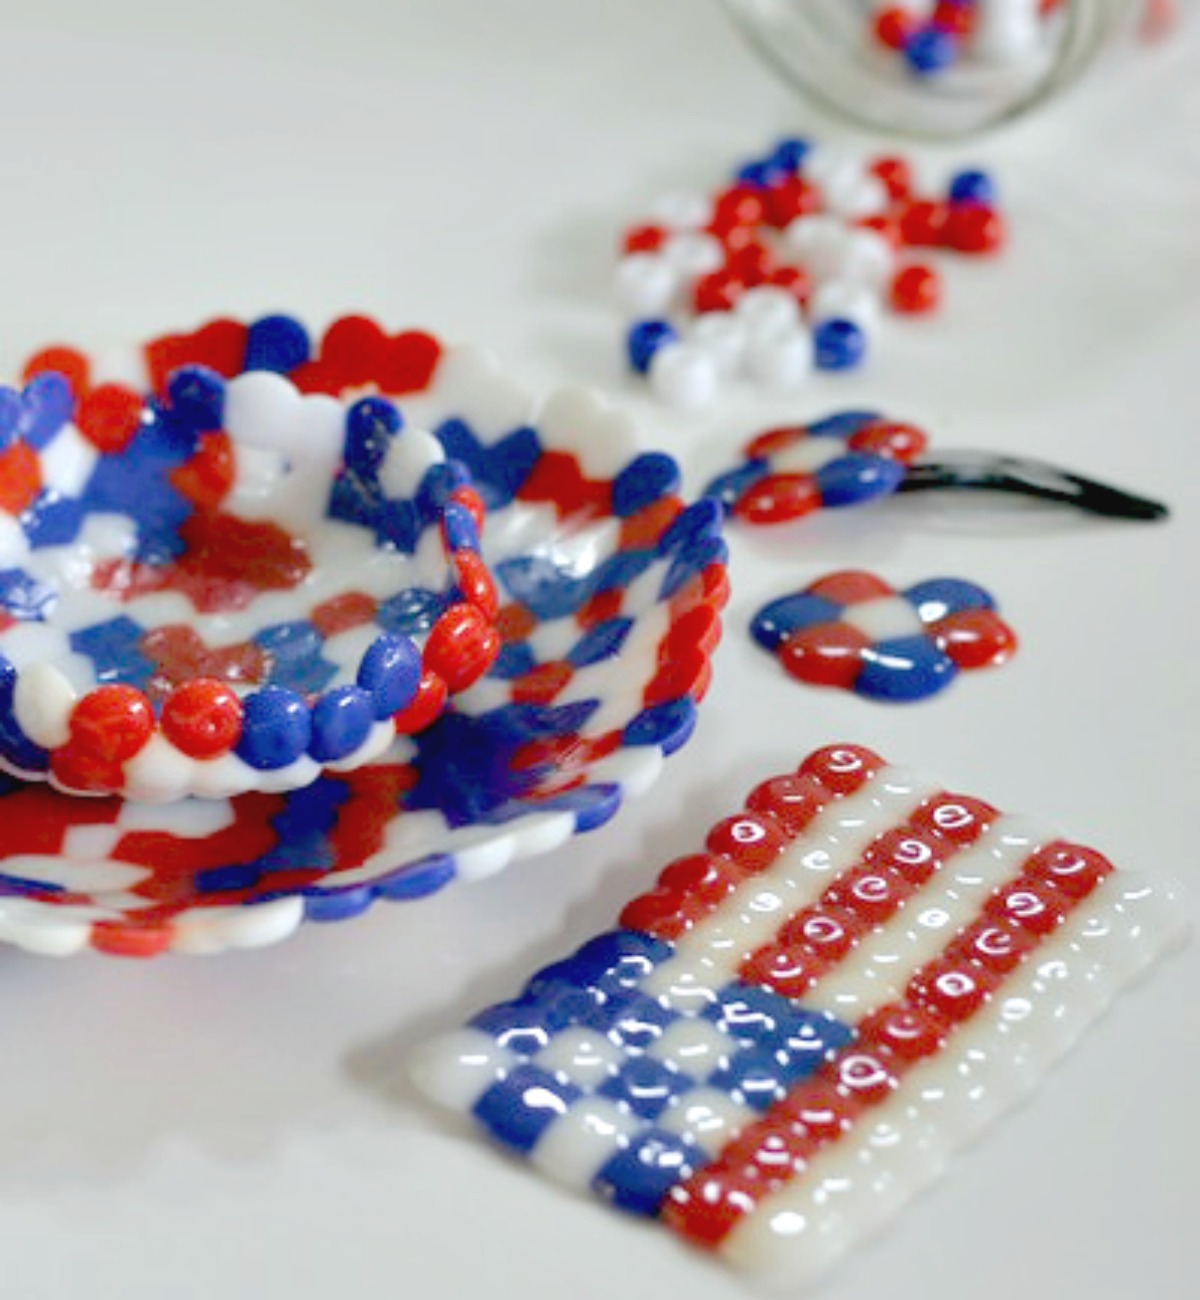 melted bead crafting